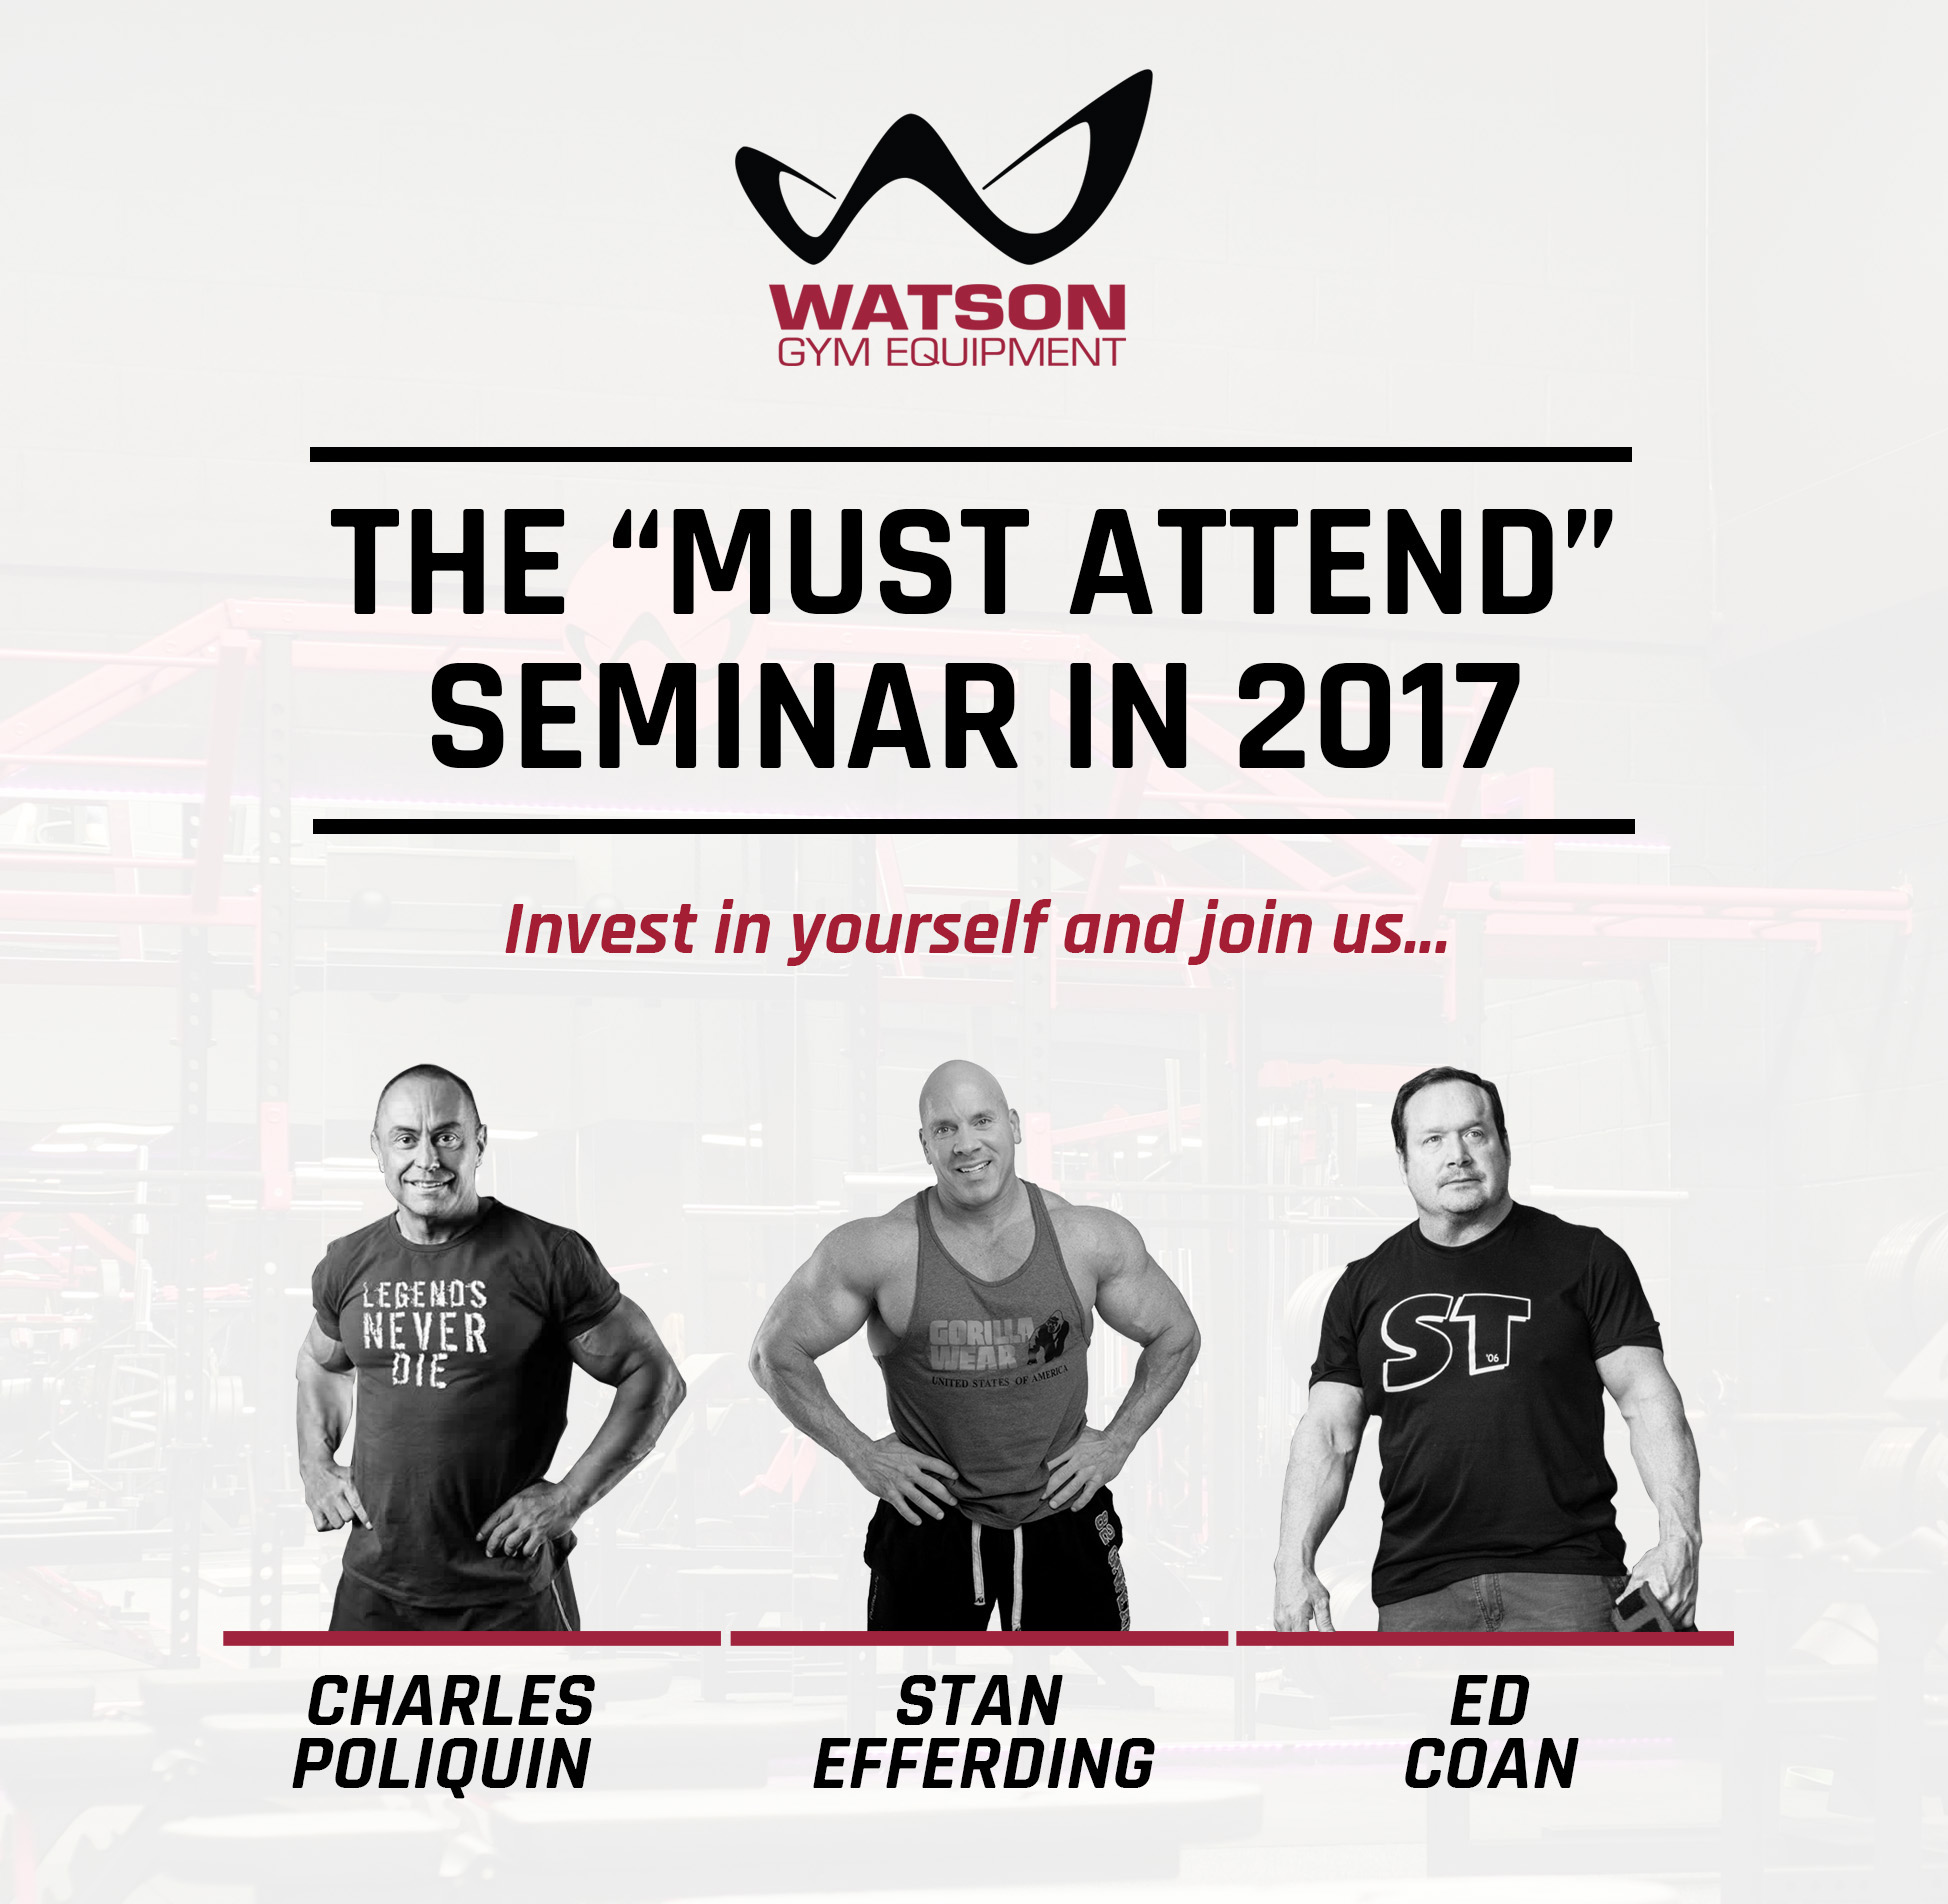 Watson seminar with charles stan and ed